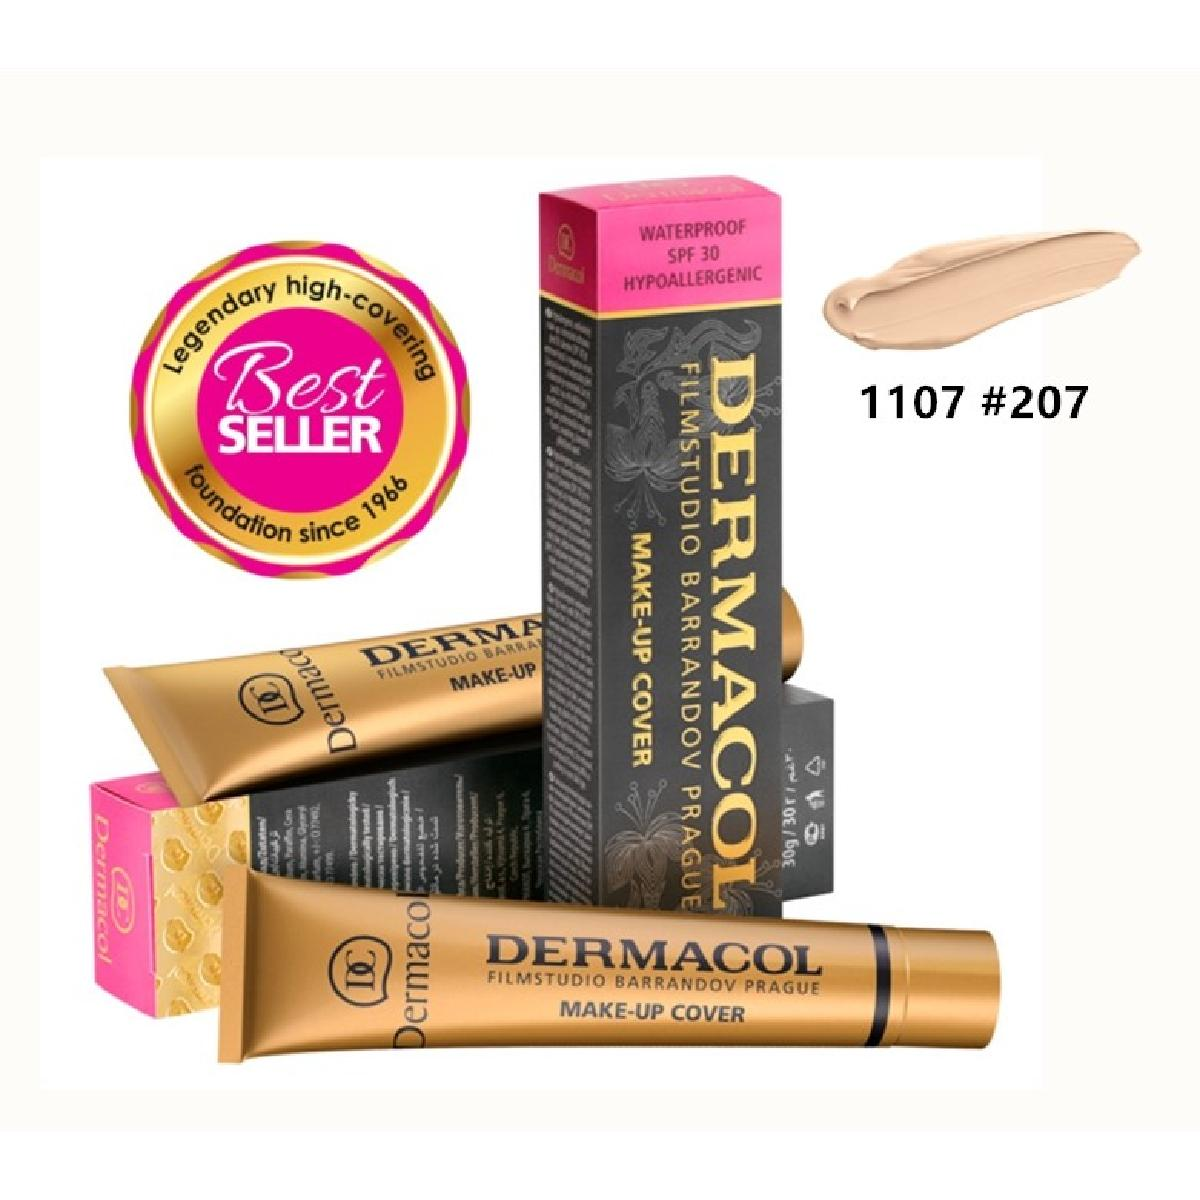 Dermacol make-up cover 30g - 207 (16 colors)